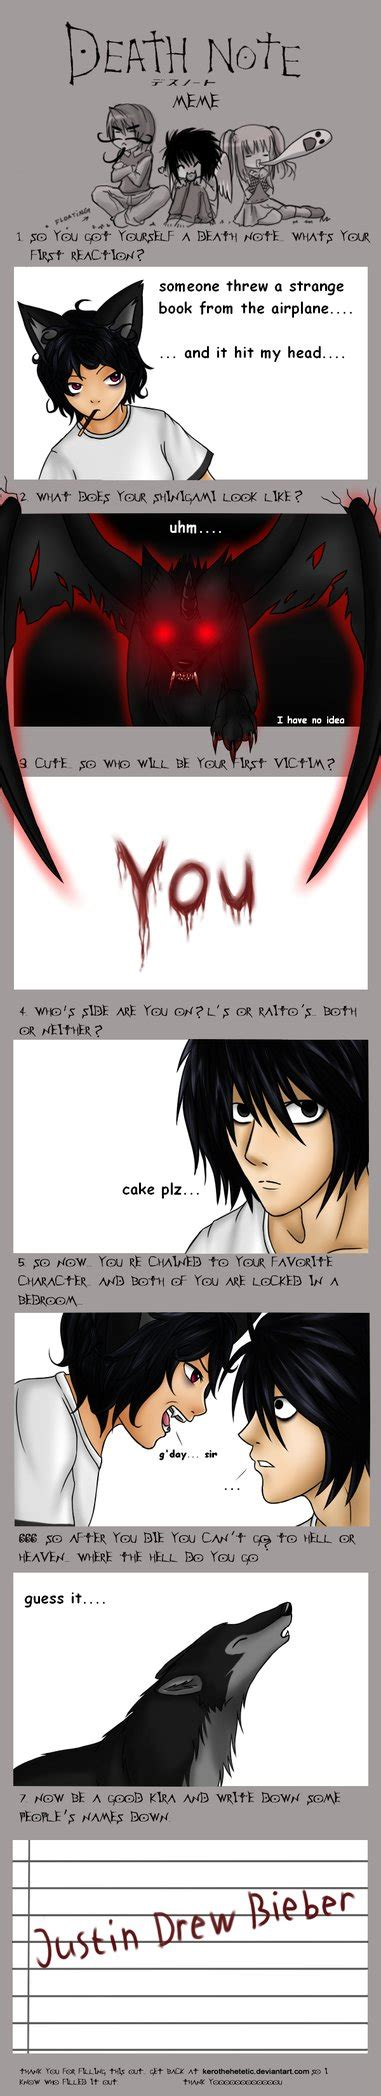 Death Note Meme - death note meme by zerieleany on deviantart